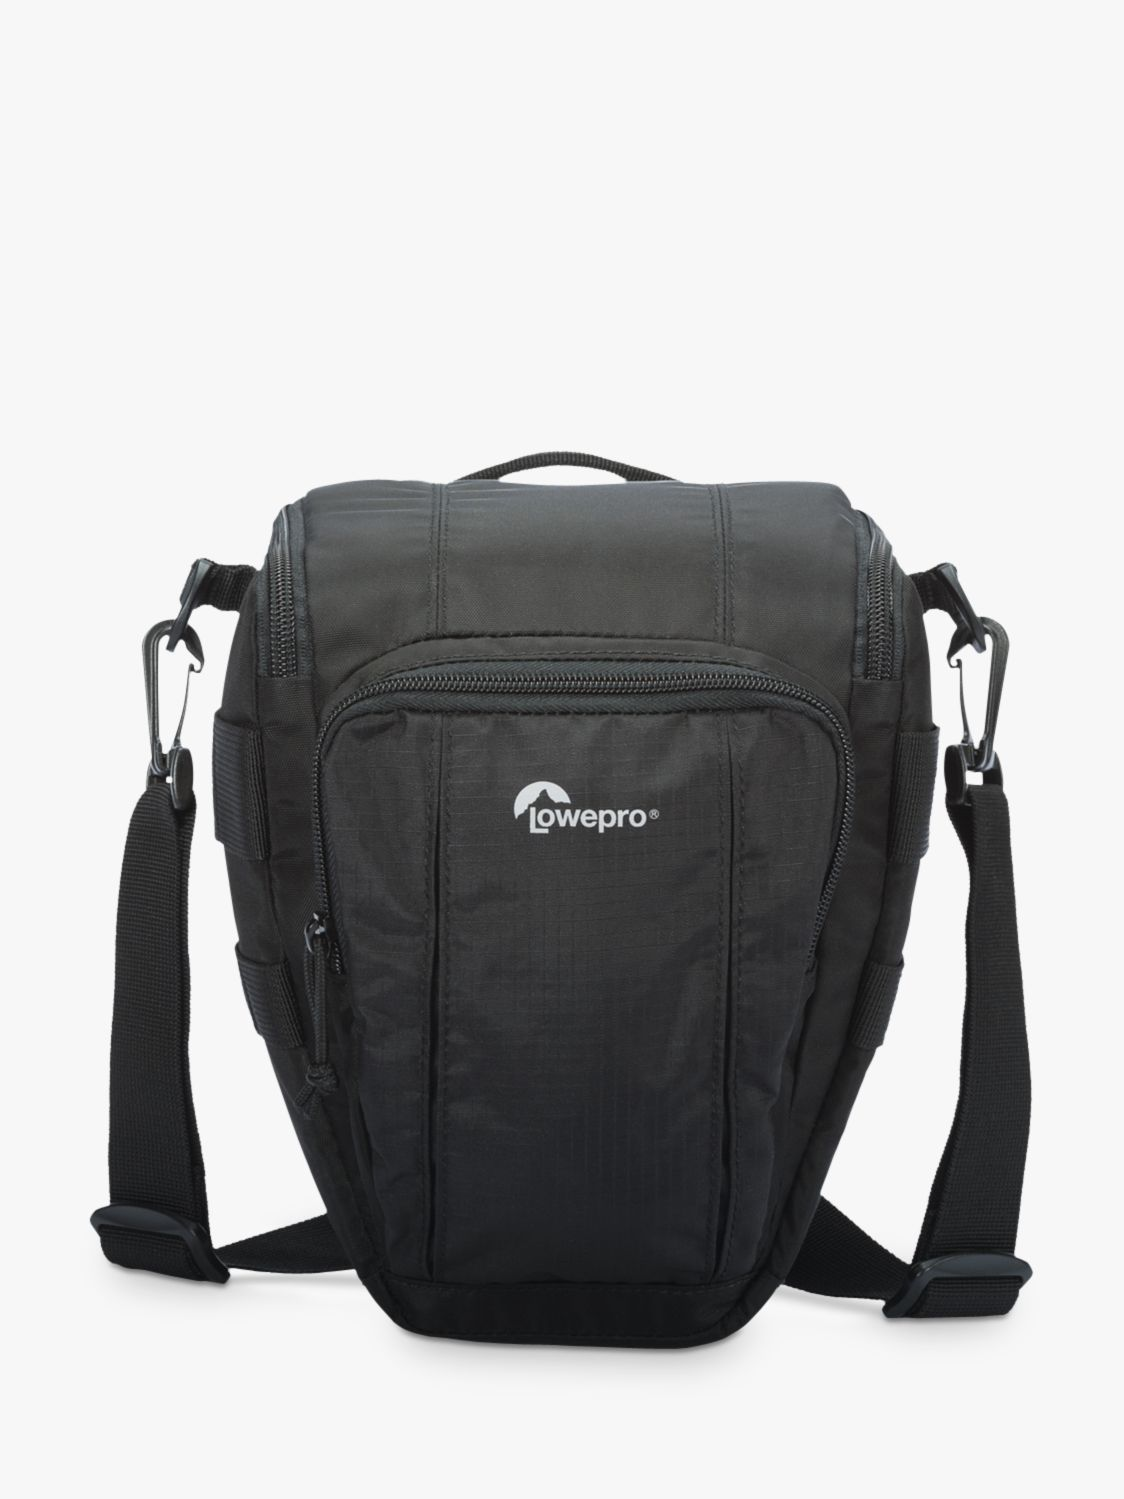 Lowepro Lowepro Toploader Zoom 50 AW II Camera Case